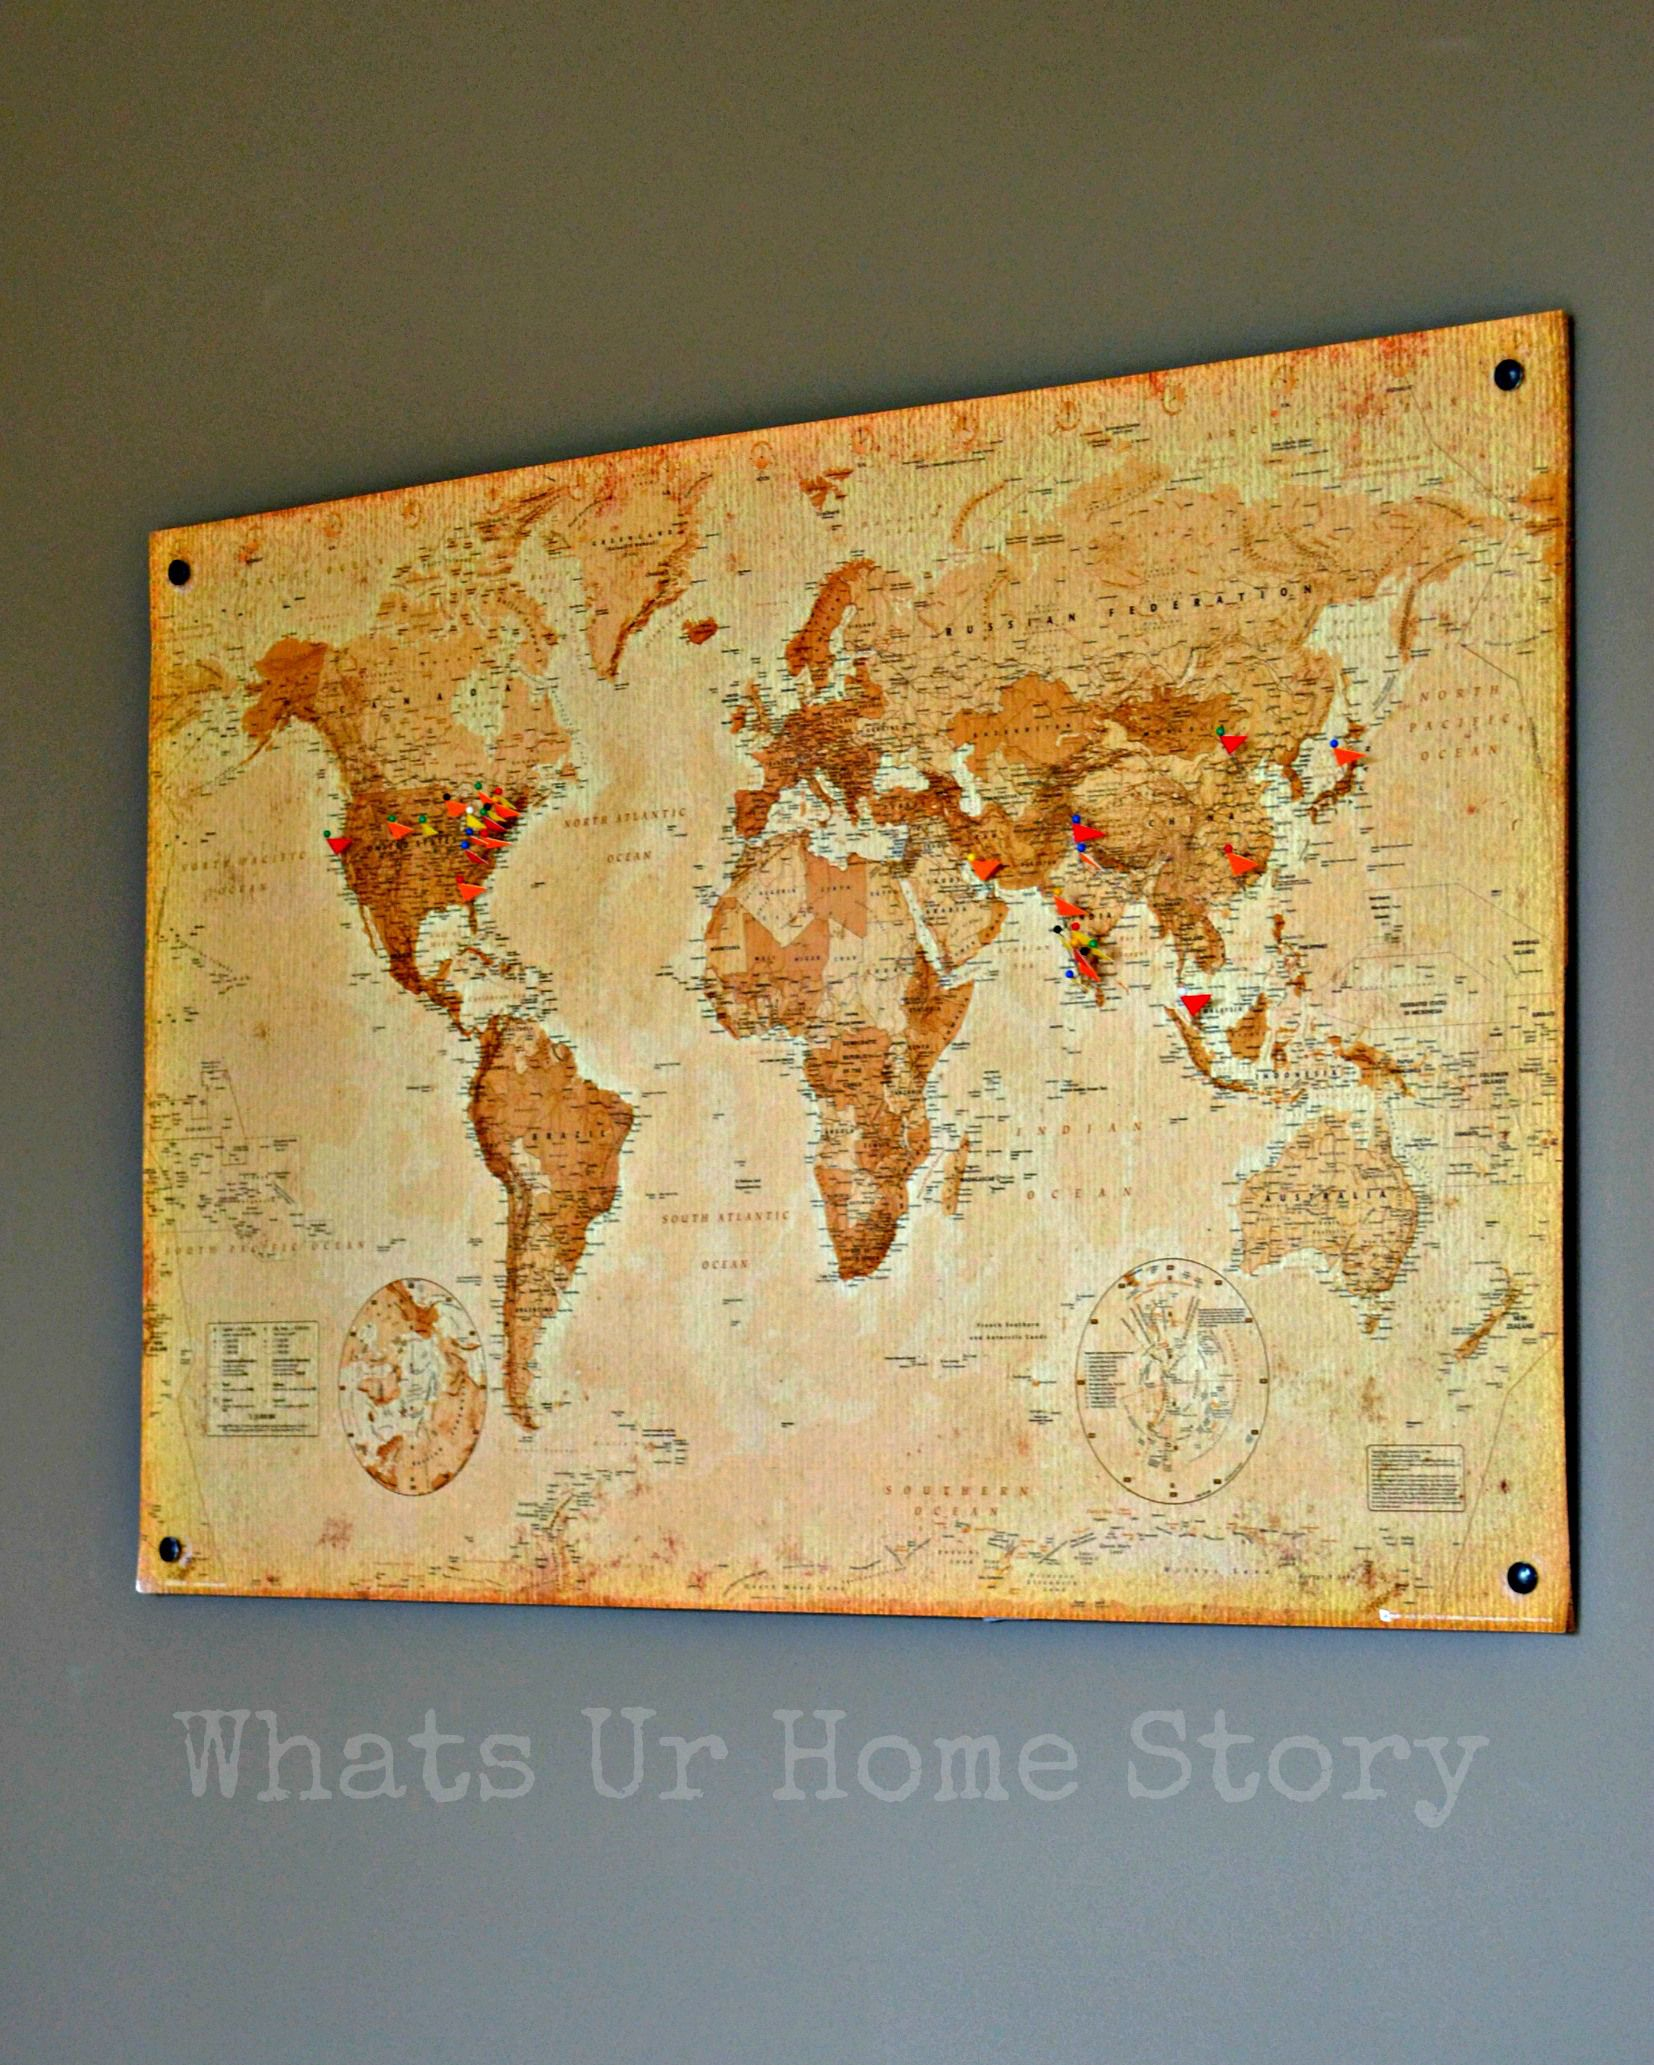 Cork Board Ideas For Your Home and Your Home Office | Cork boards ...